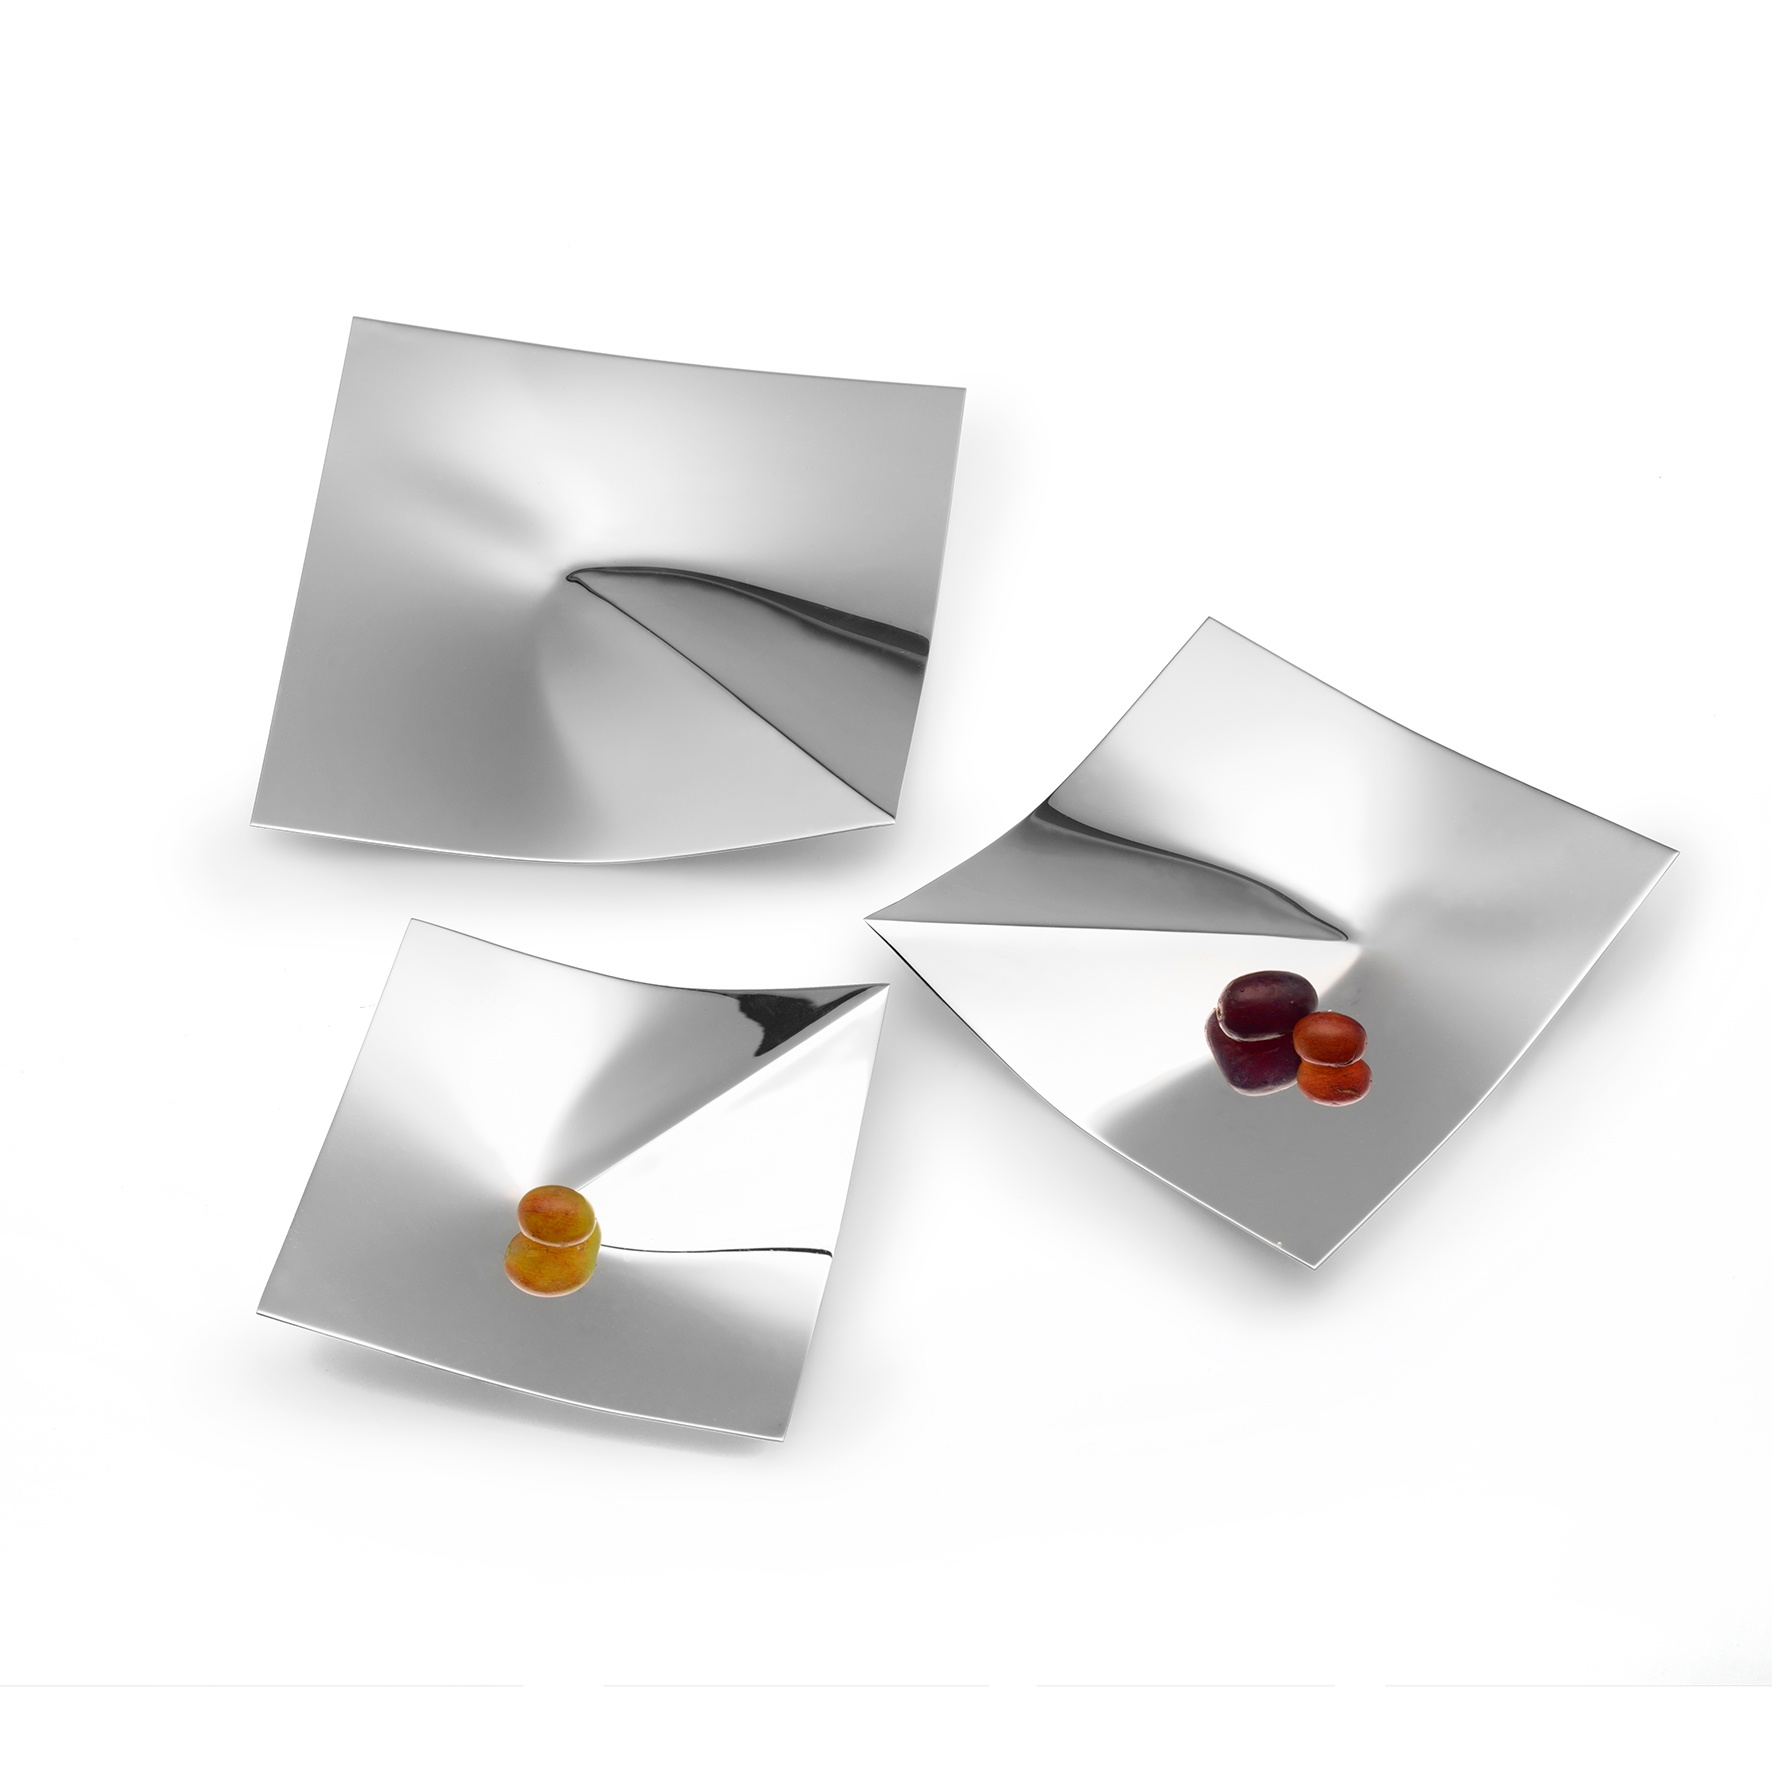 SILVER SPICE DISHES